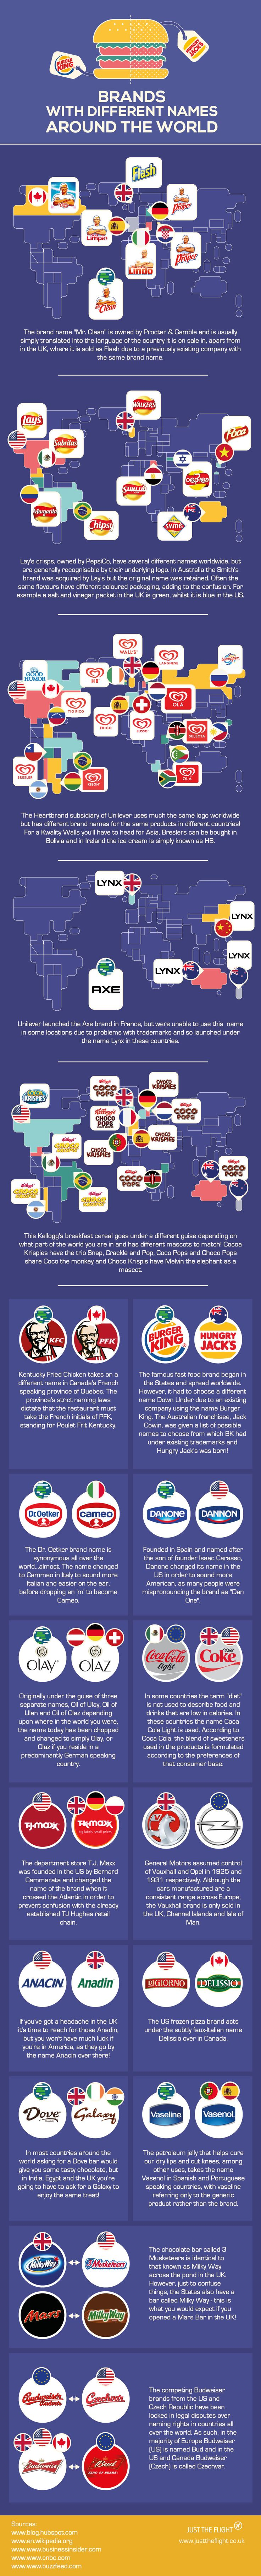 Interesting graphic on how brands have different names around the world.